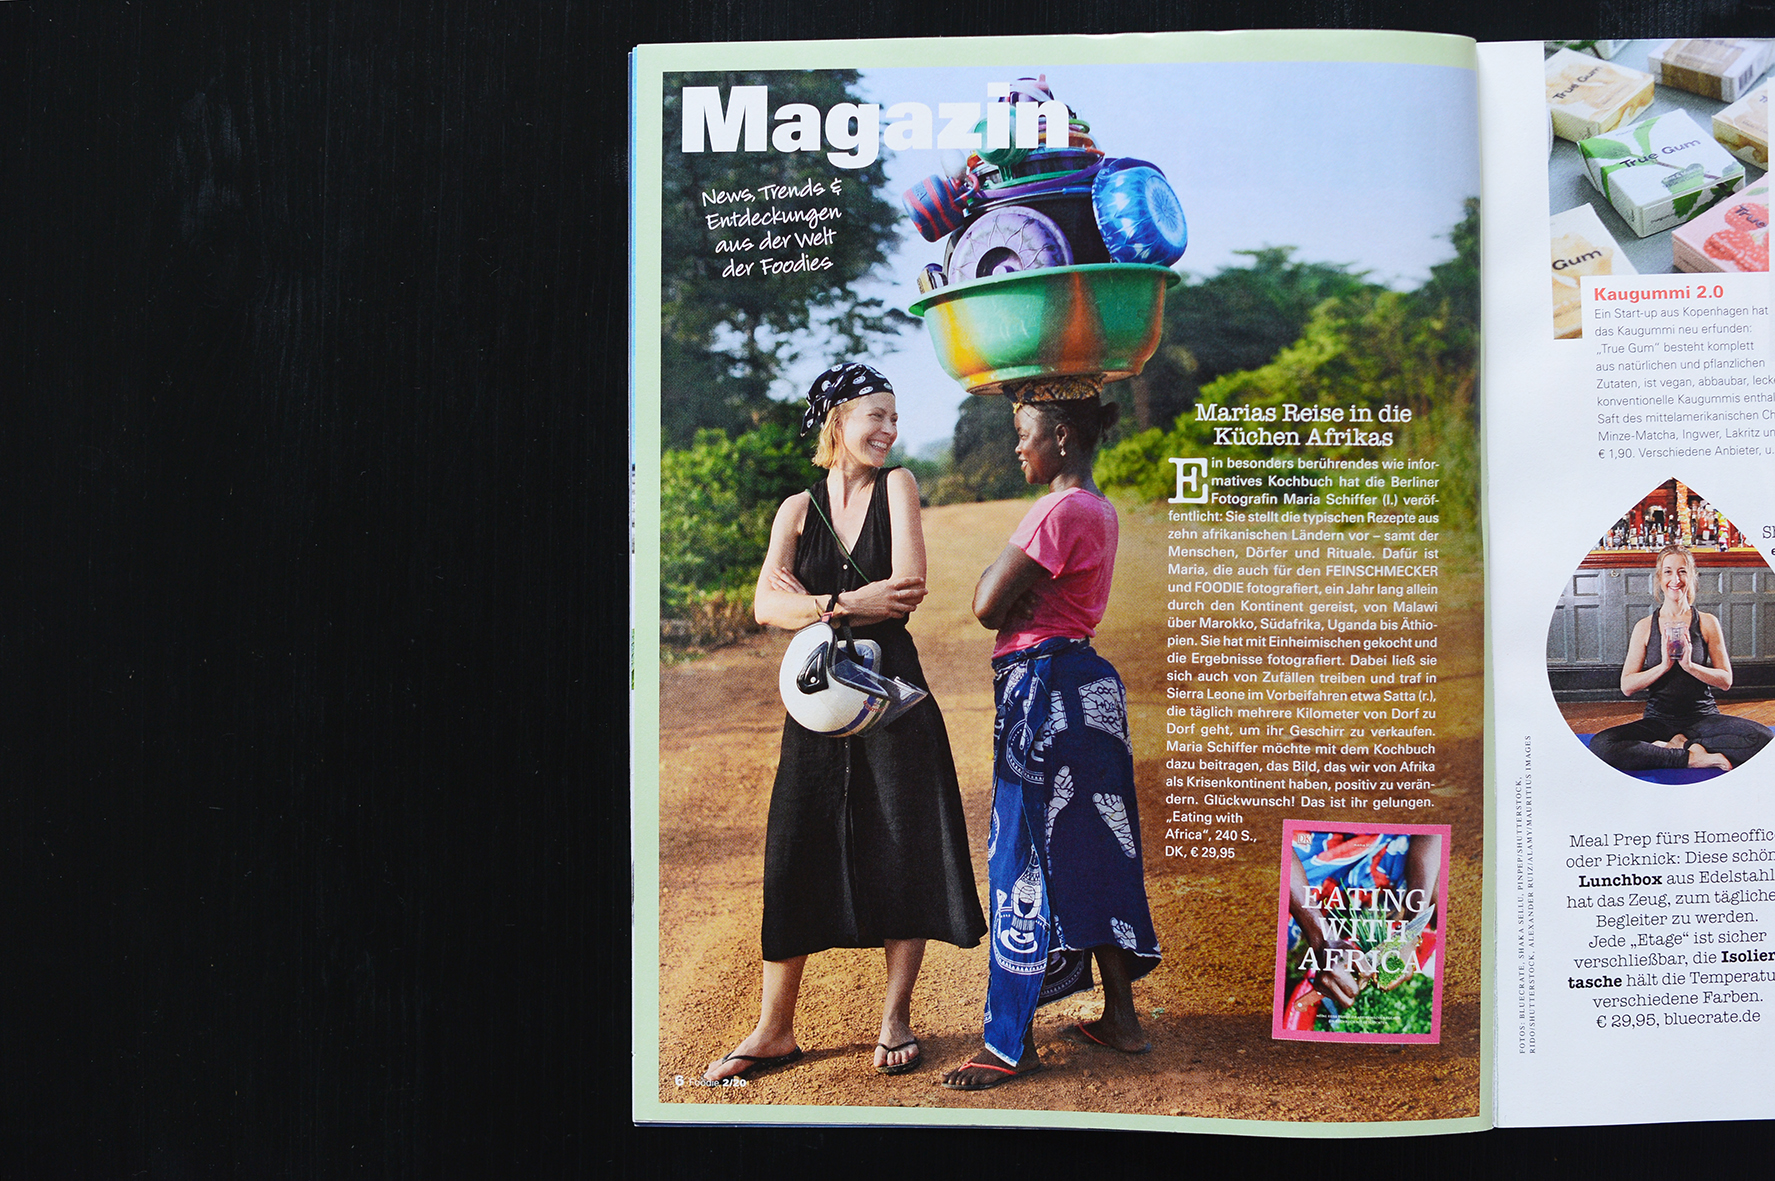 Foodie Magazin, Maria Schiffer in Sierra Leone für das Buch Eating with Africa